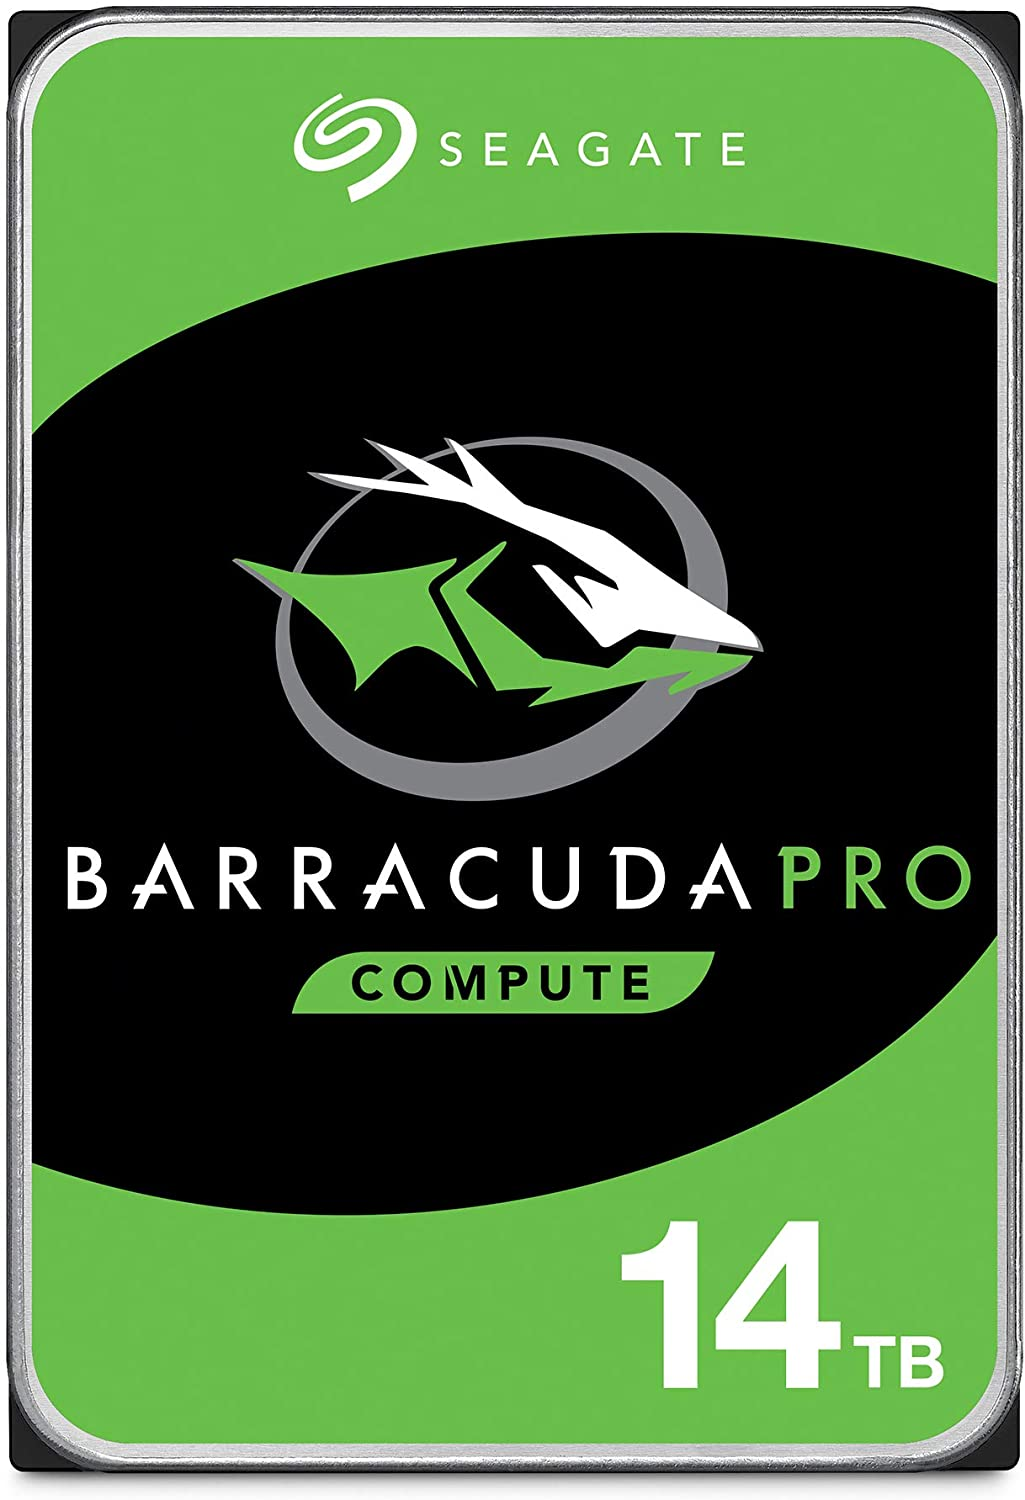 Seagate Barracuda Pro Performance Internal Hard Drive SATA HDD 14TB 6GB/s 256MB Cache 3.5-Inch - Frustration Free Packaging (ST14000DM001)